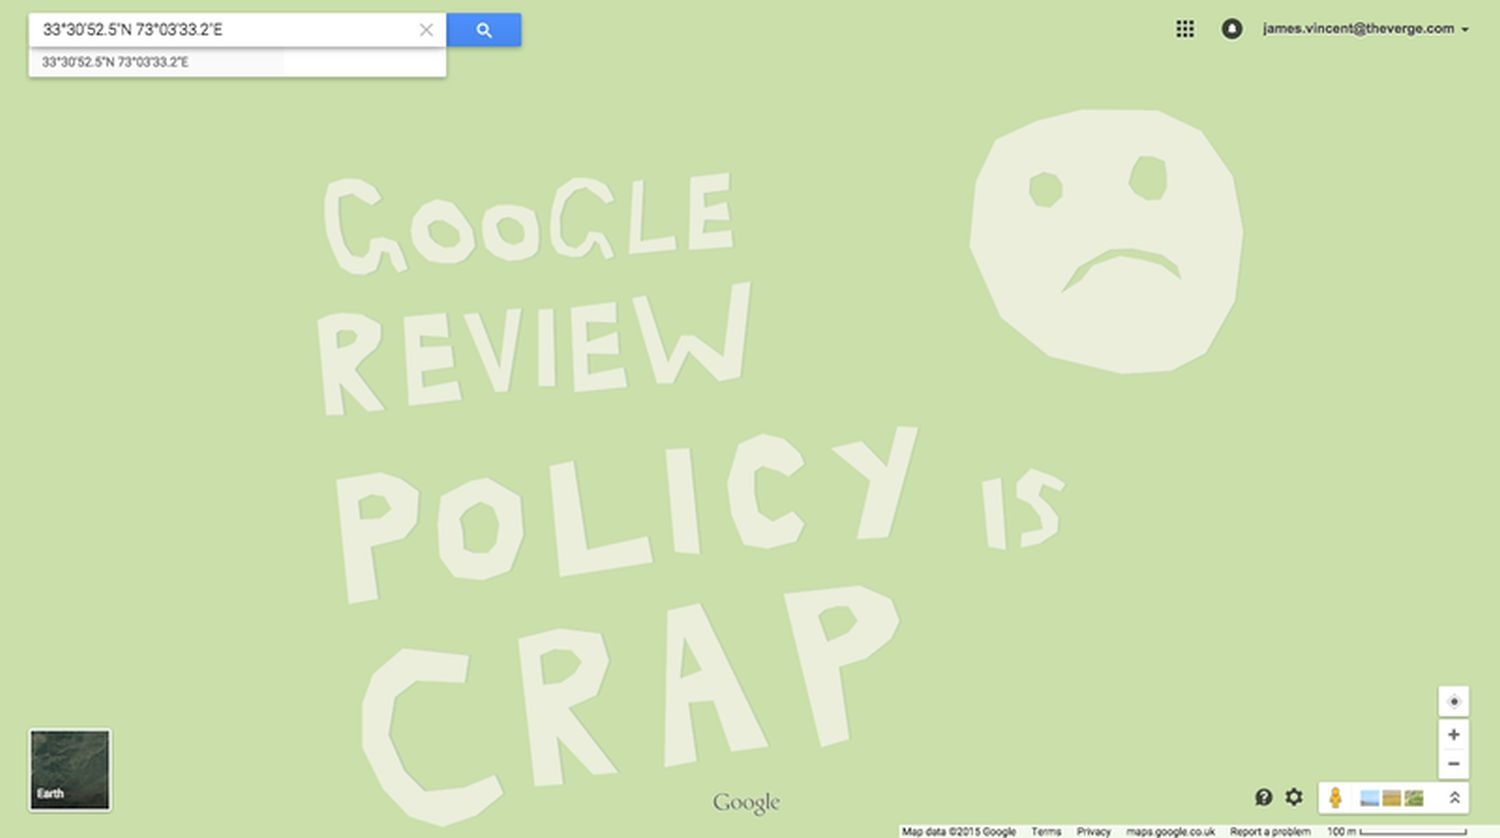 google maps review crap